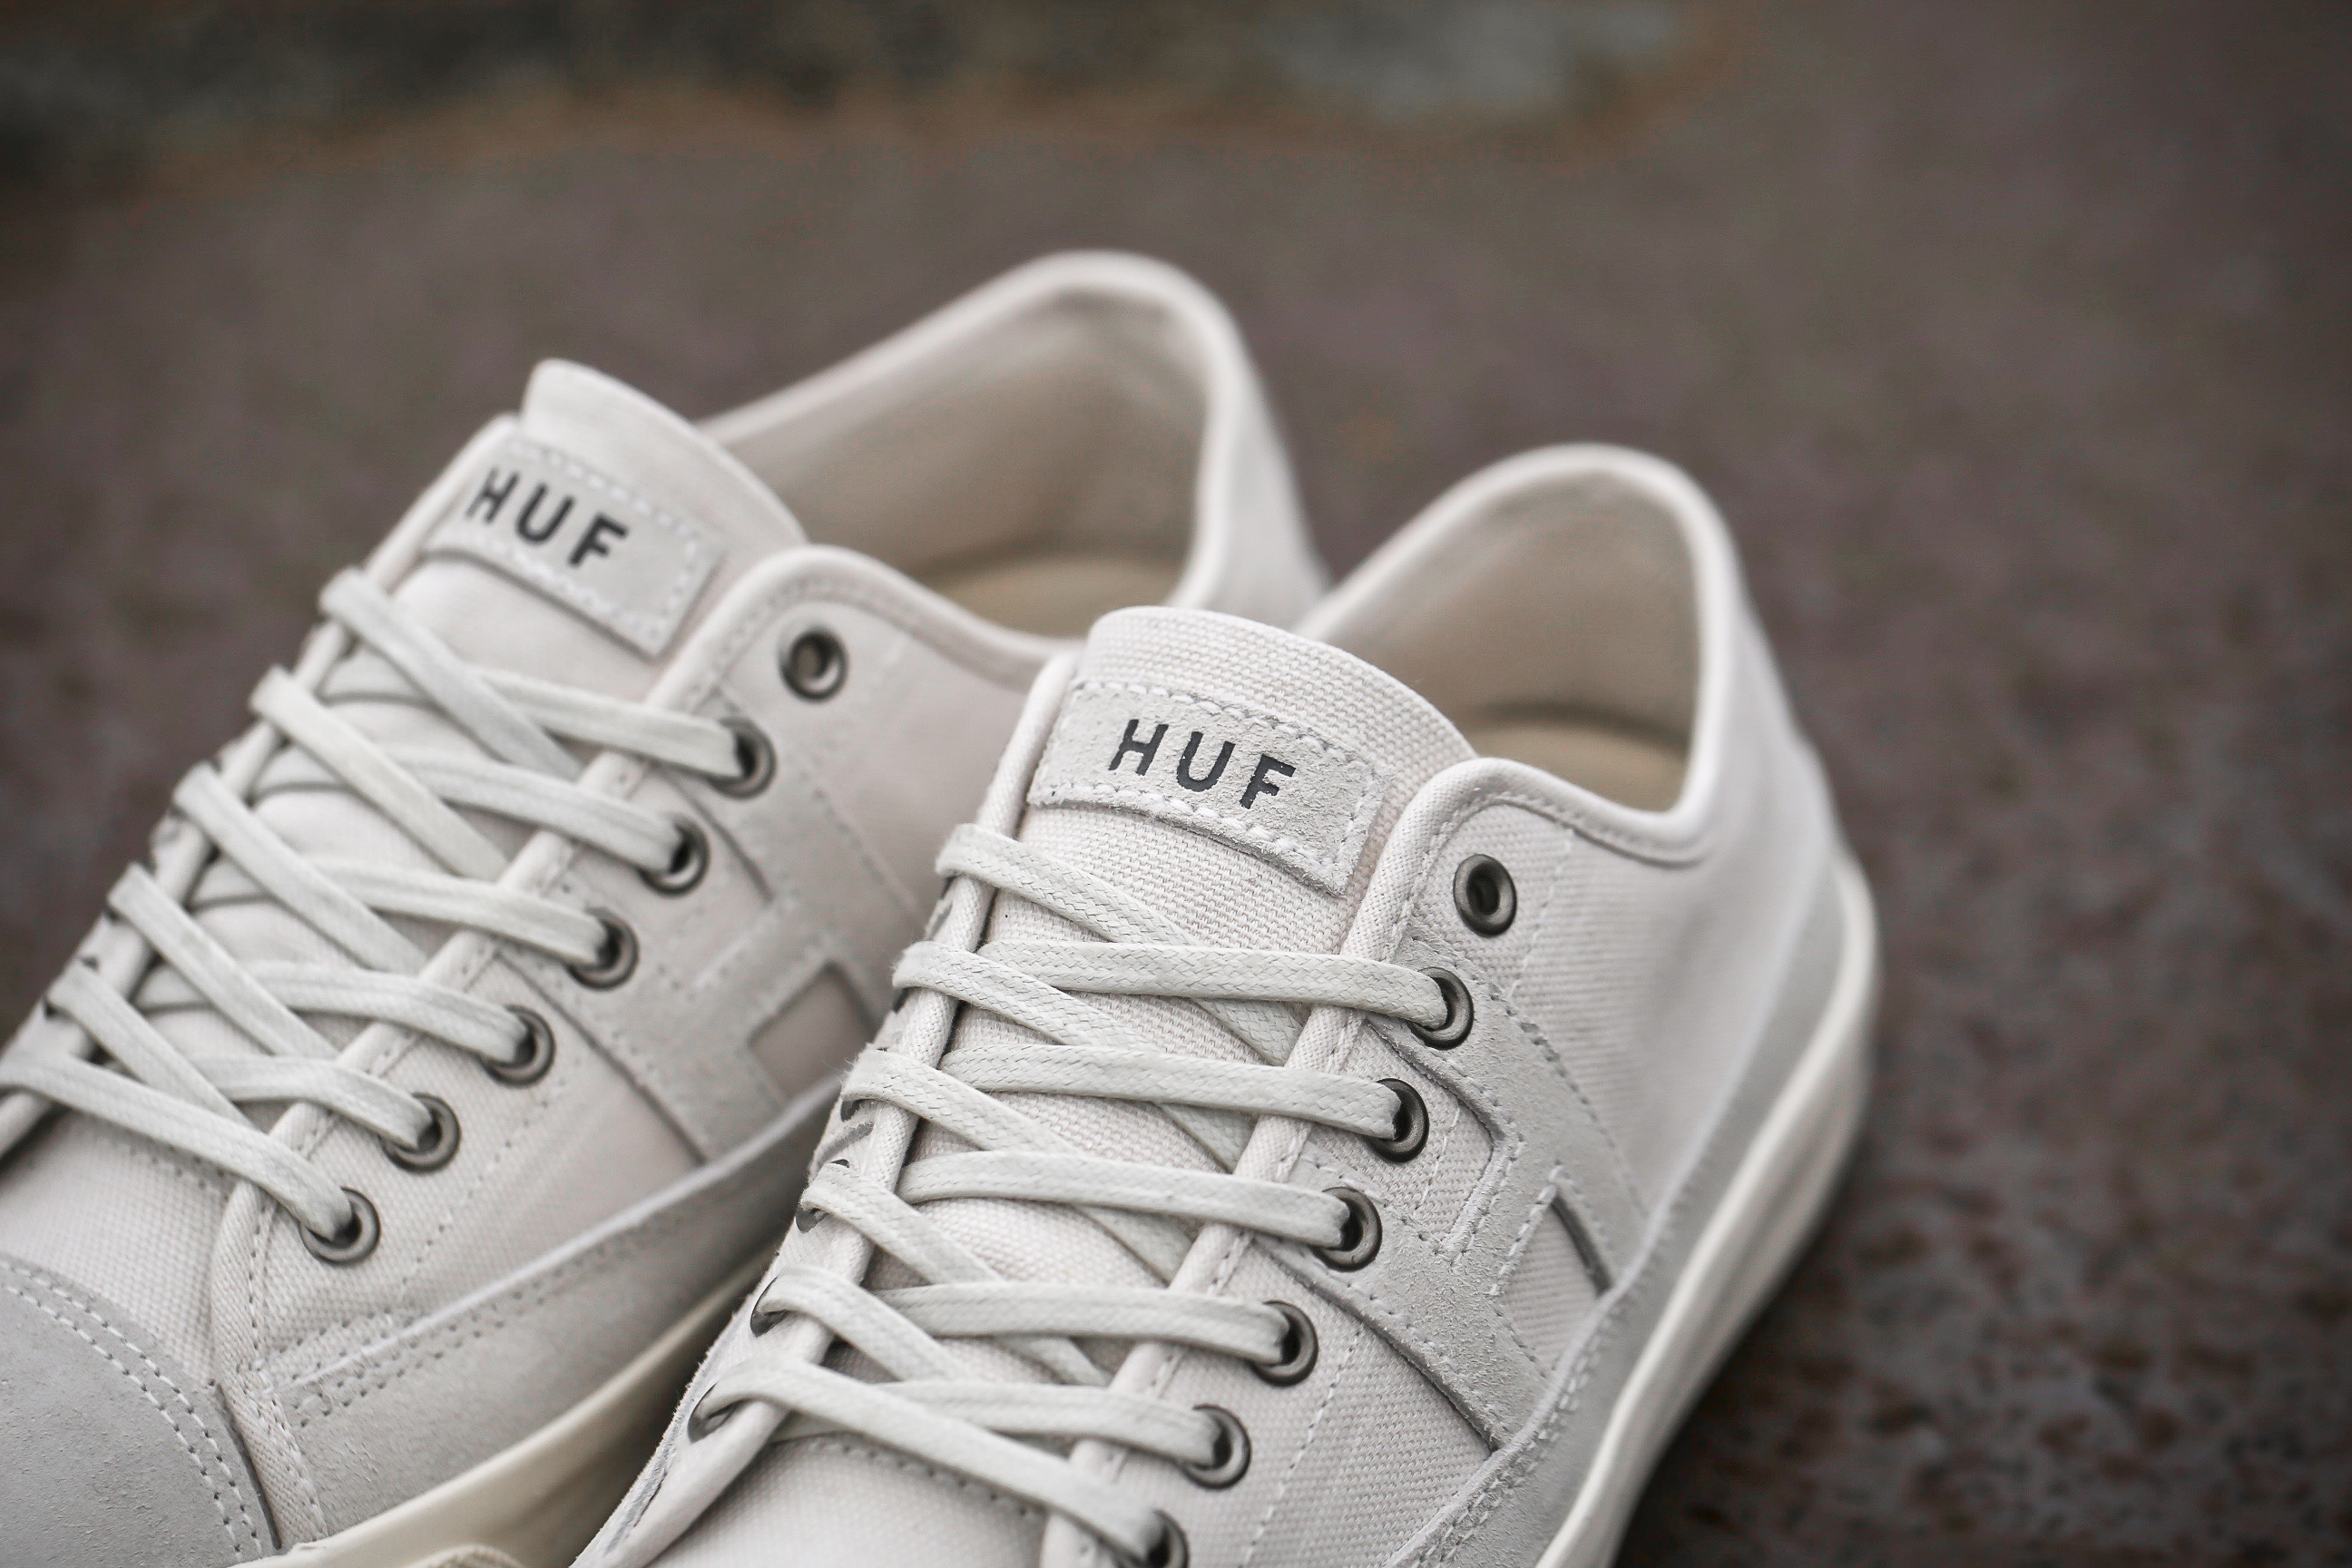 Huf Hupper 2 Low Nartural White Stasp